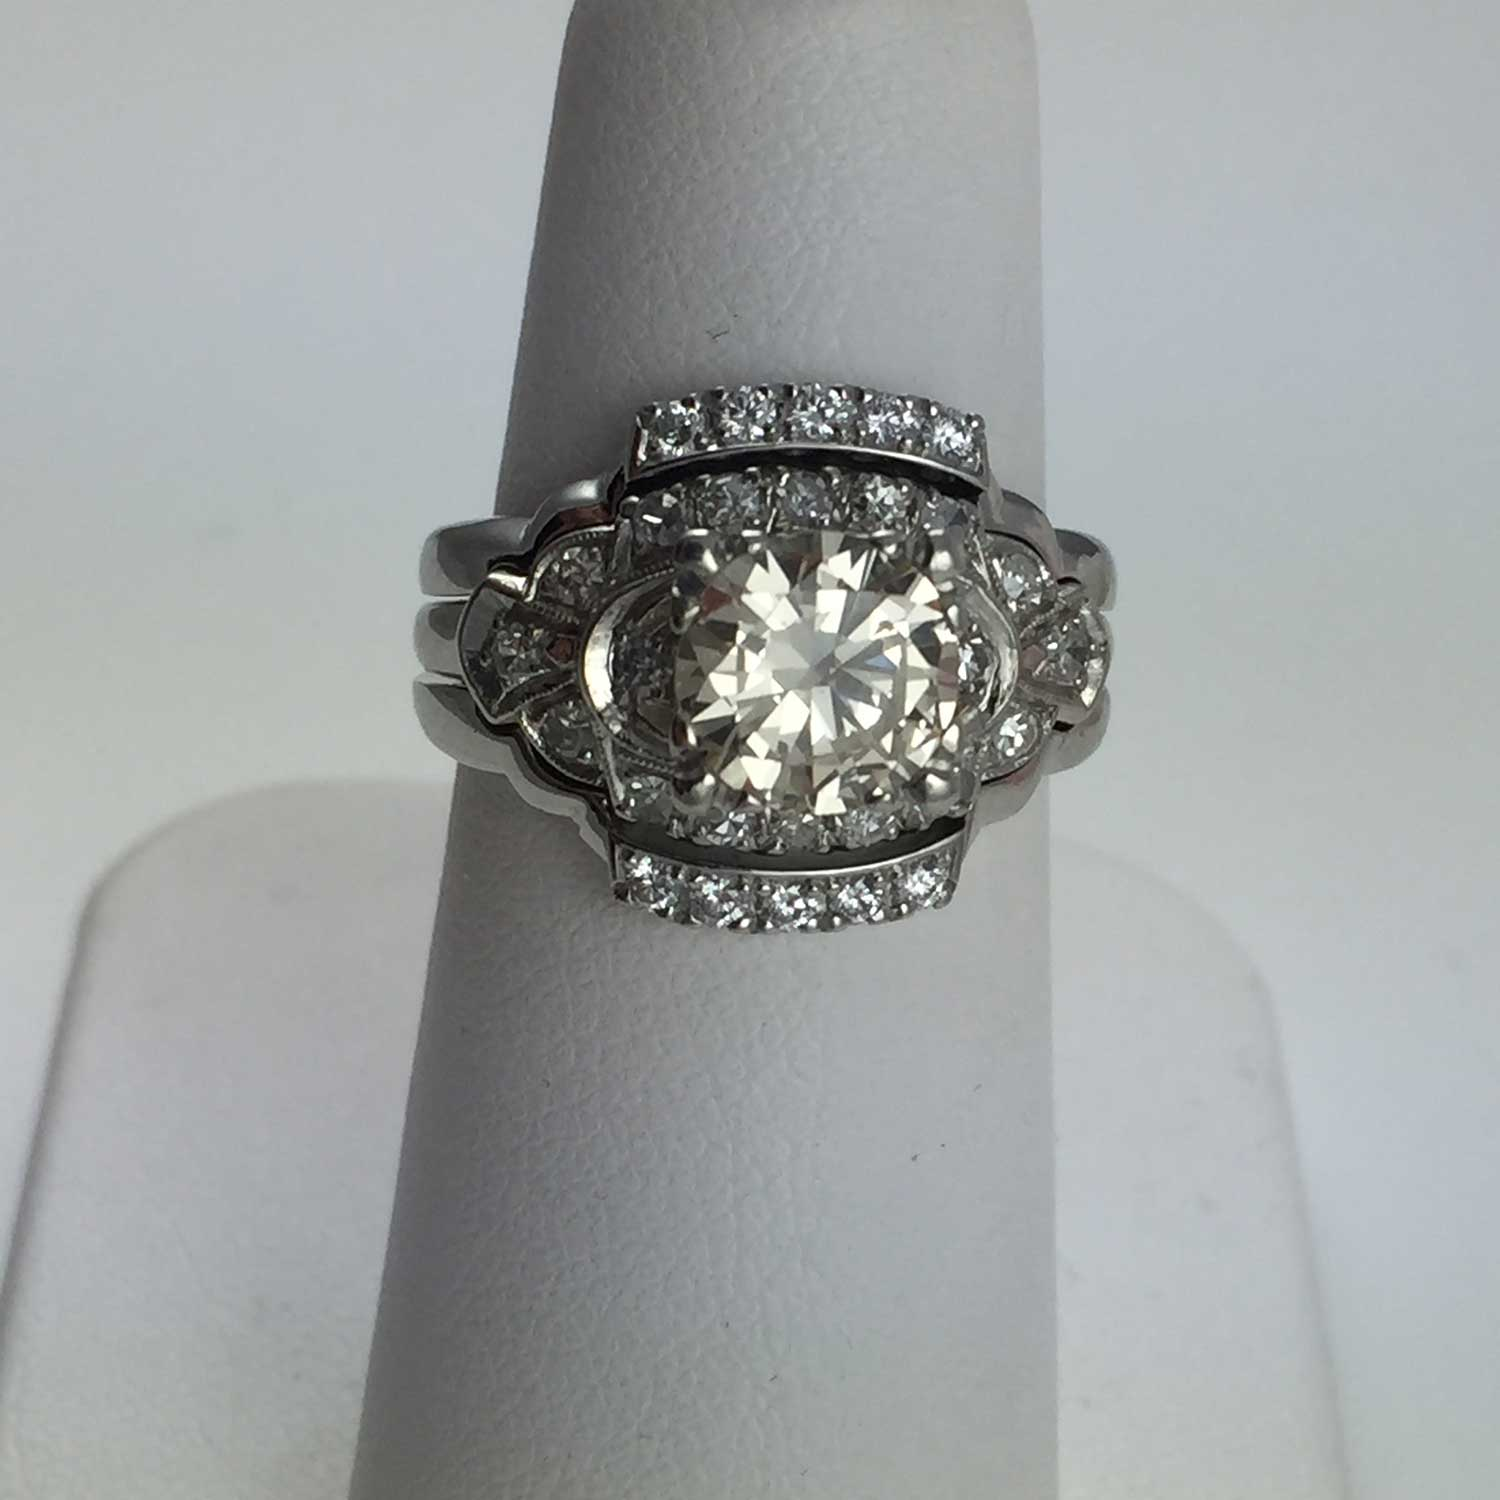 ring modern drop wedding engagement rings dew info with custom tropicaltanning jewellery style